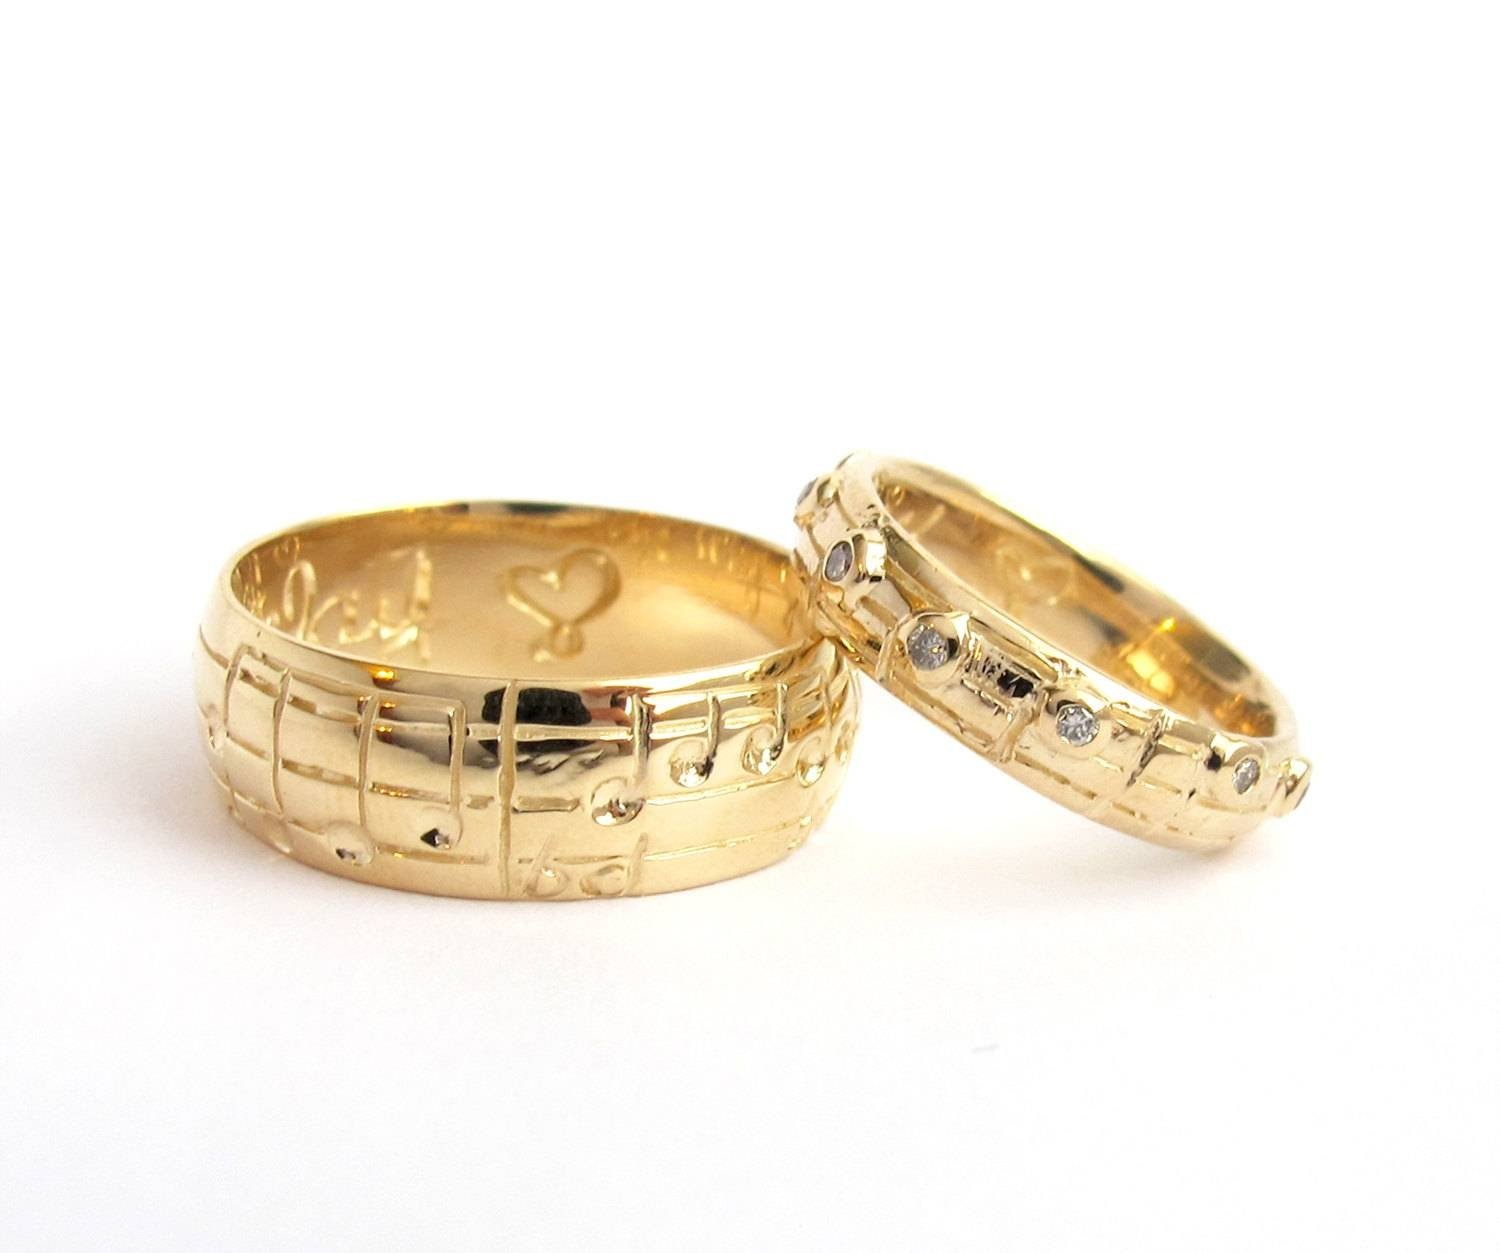 Charming New Wedding Rings Within Music Wedding Rings (View 3 of 15)